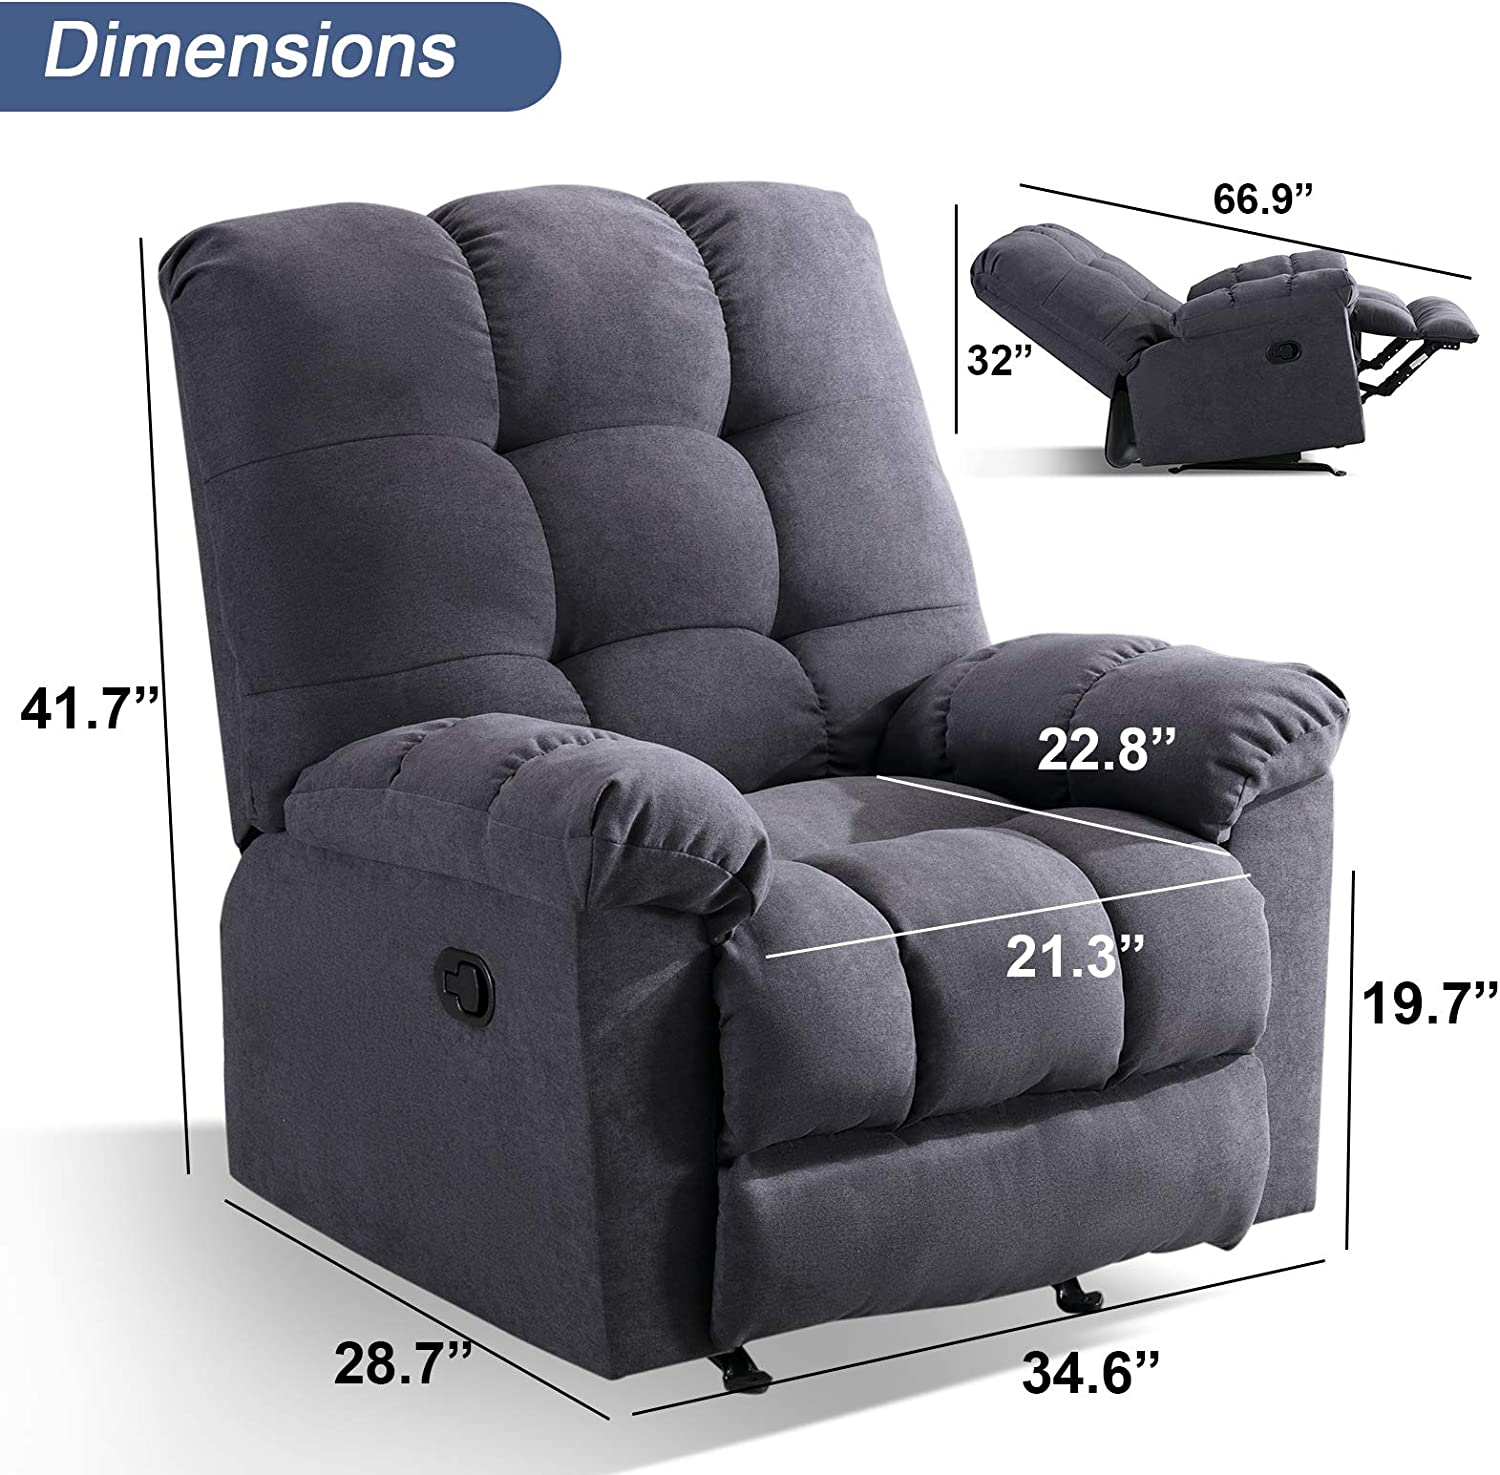 ANJ Rocker Recliner Chair Adjustable Overstuffed Fabric Manual Reclining Chair Soft Contemporary Sofa for Living Room(Navy)